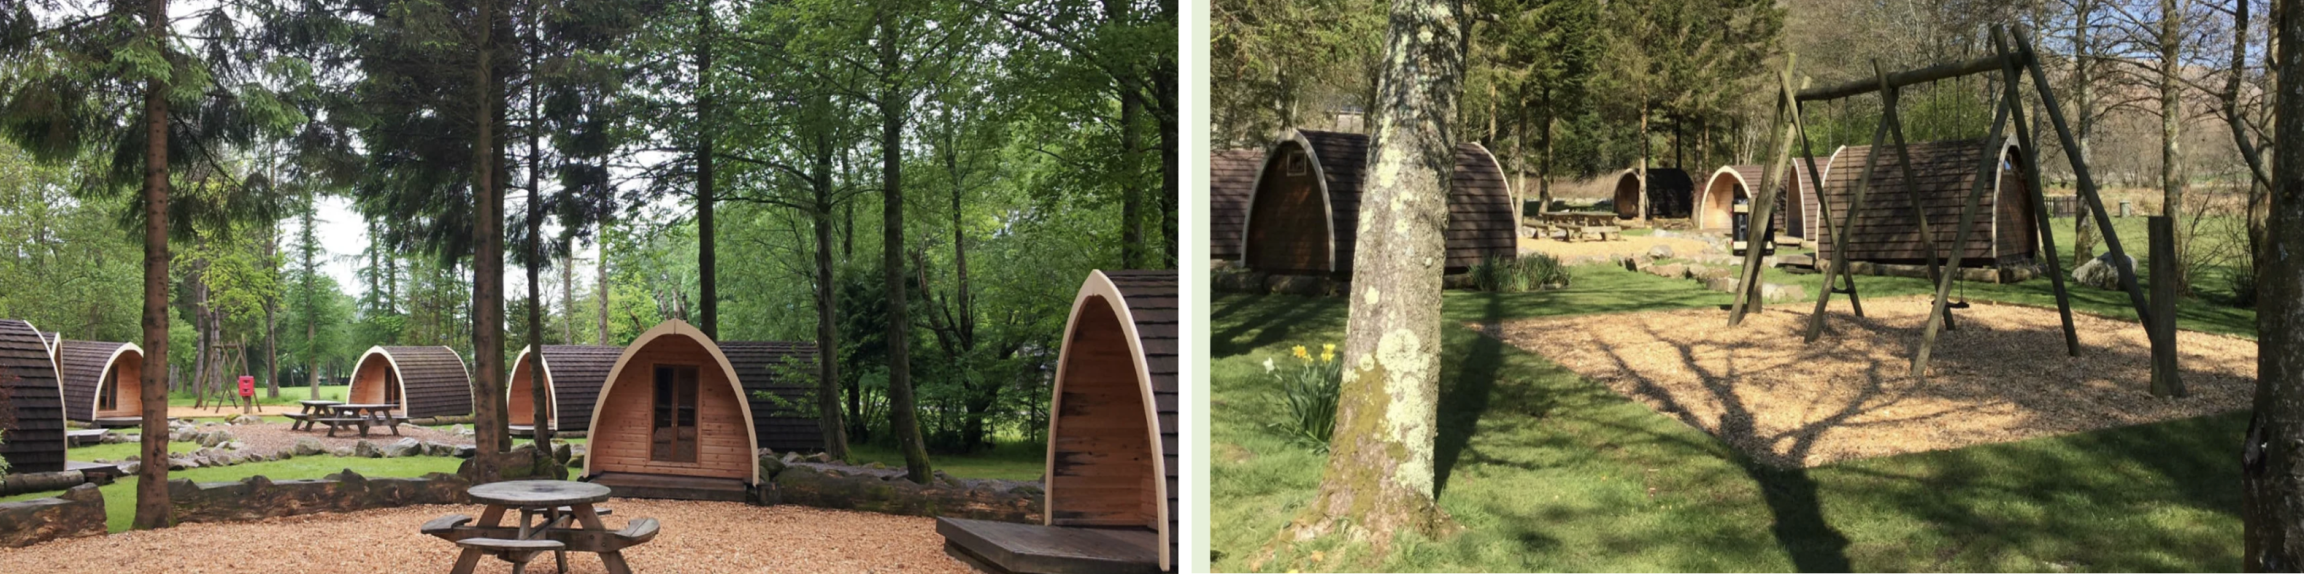 Camping Pods at the Eskdale National Trust site